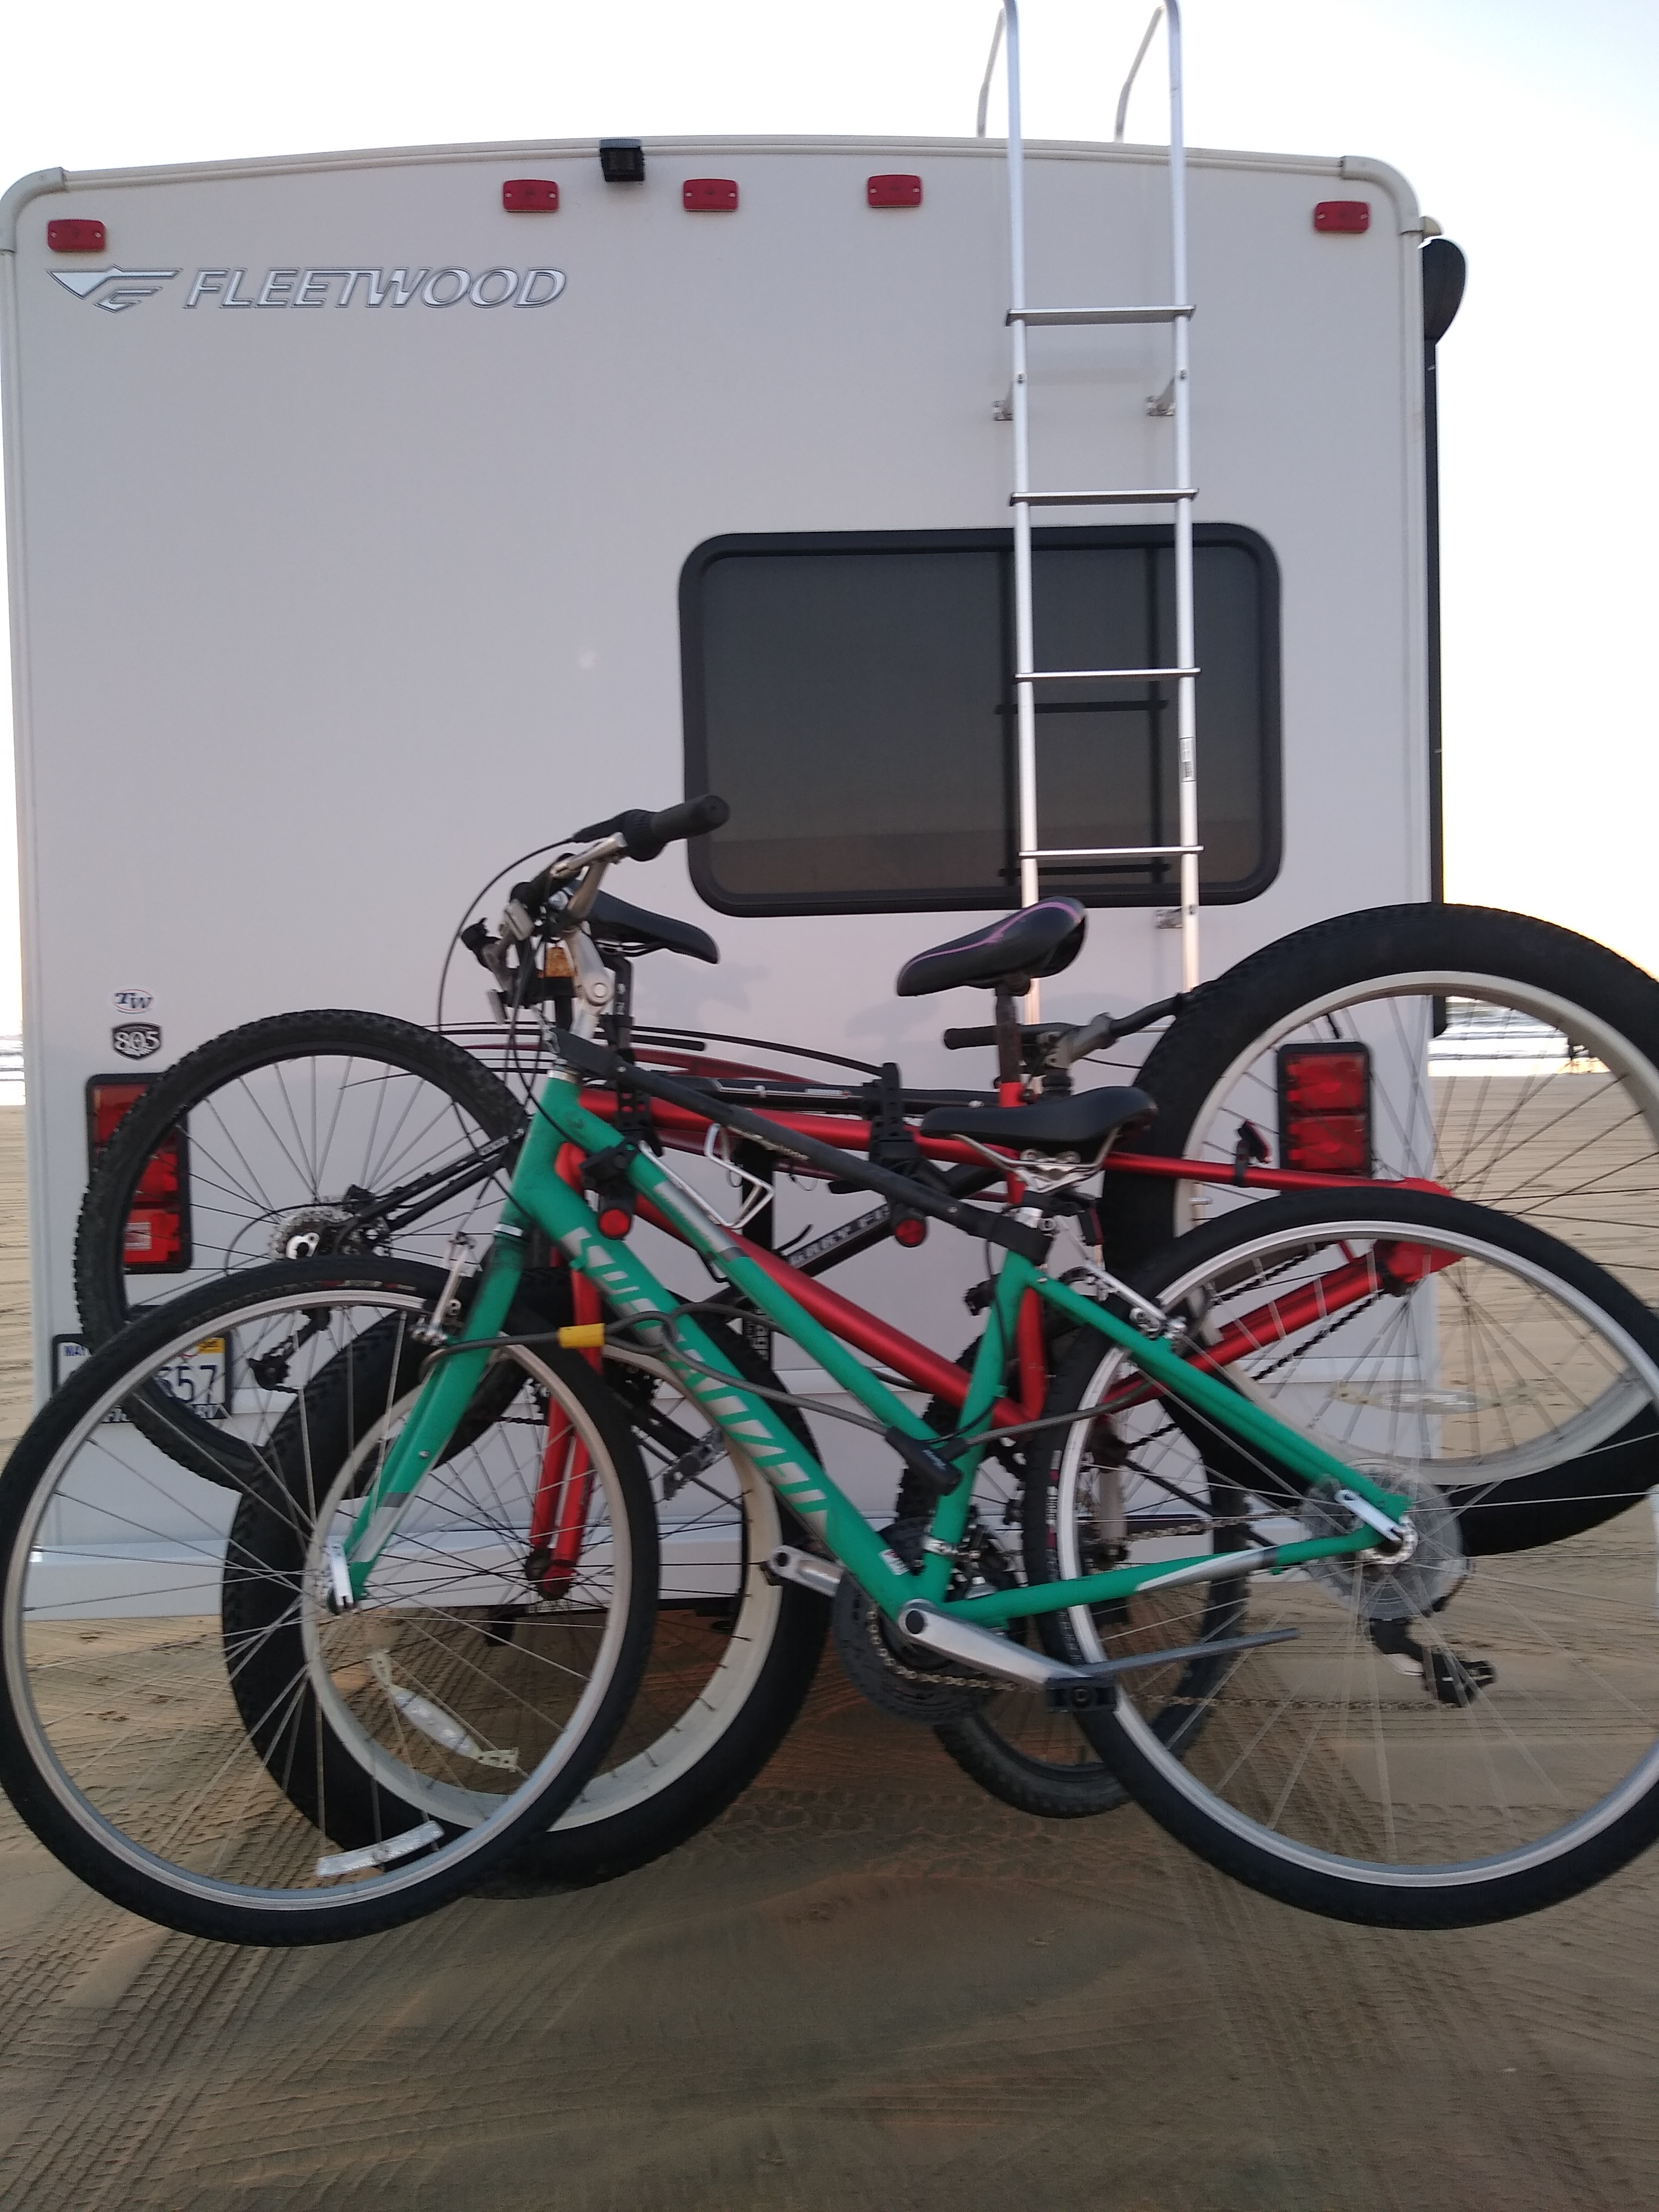 Take your bikes or rent ours. Fleetwood Surge 2018